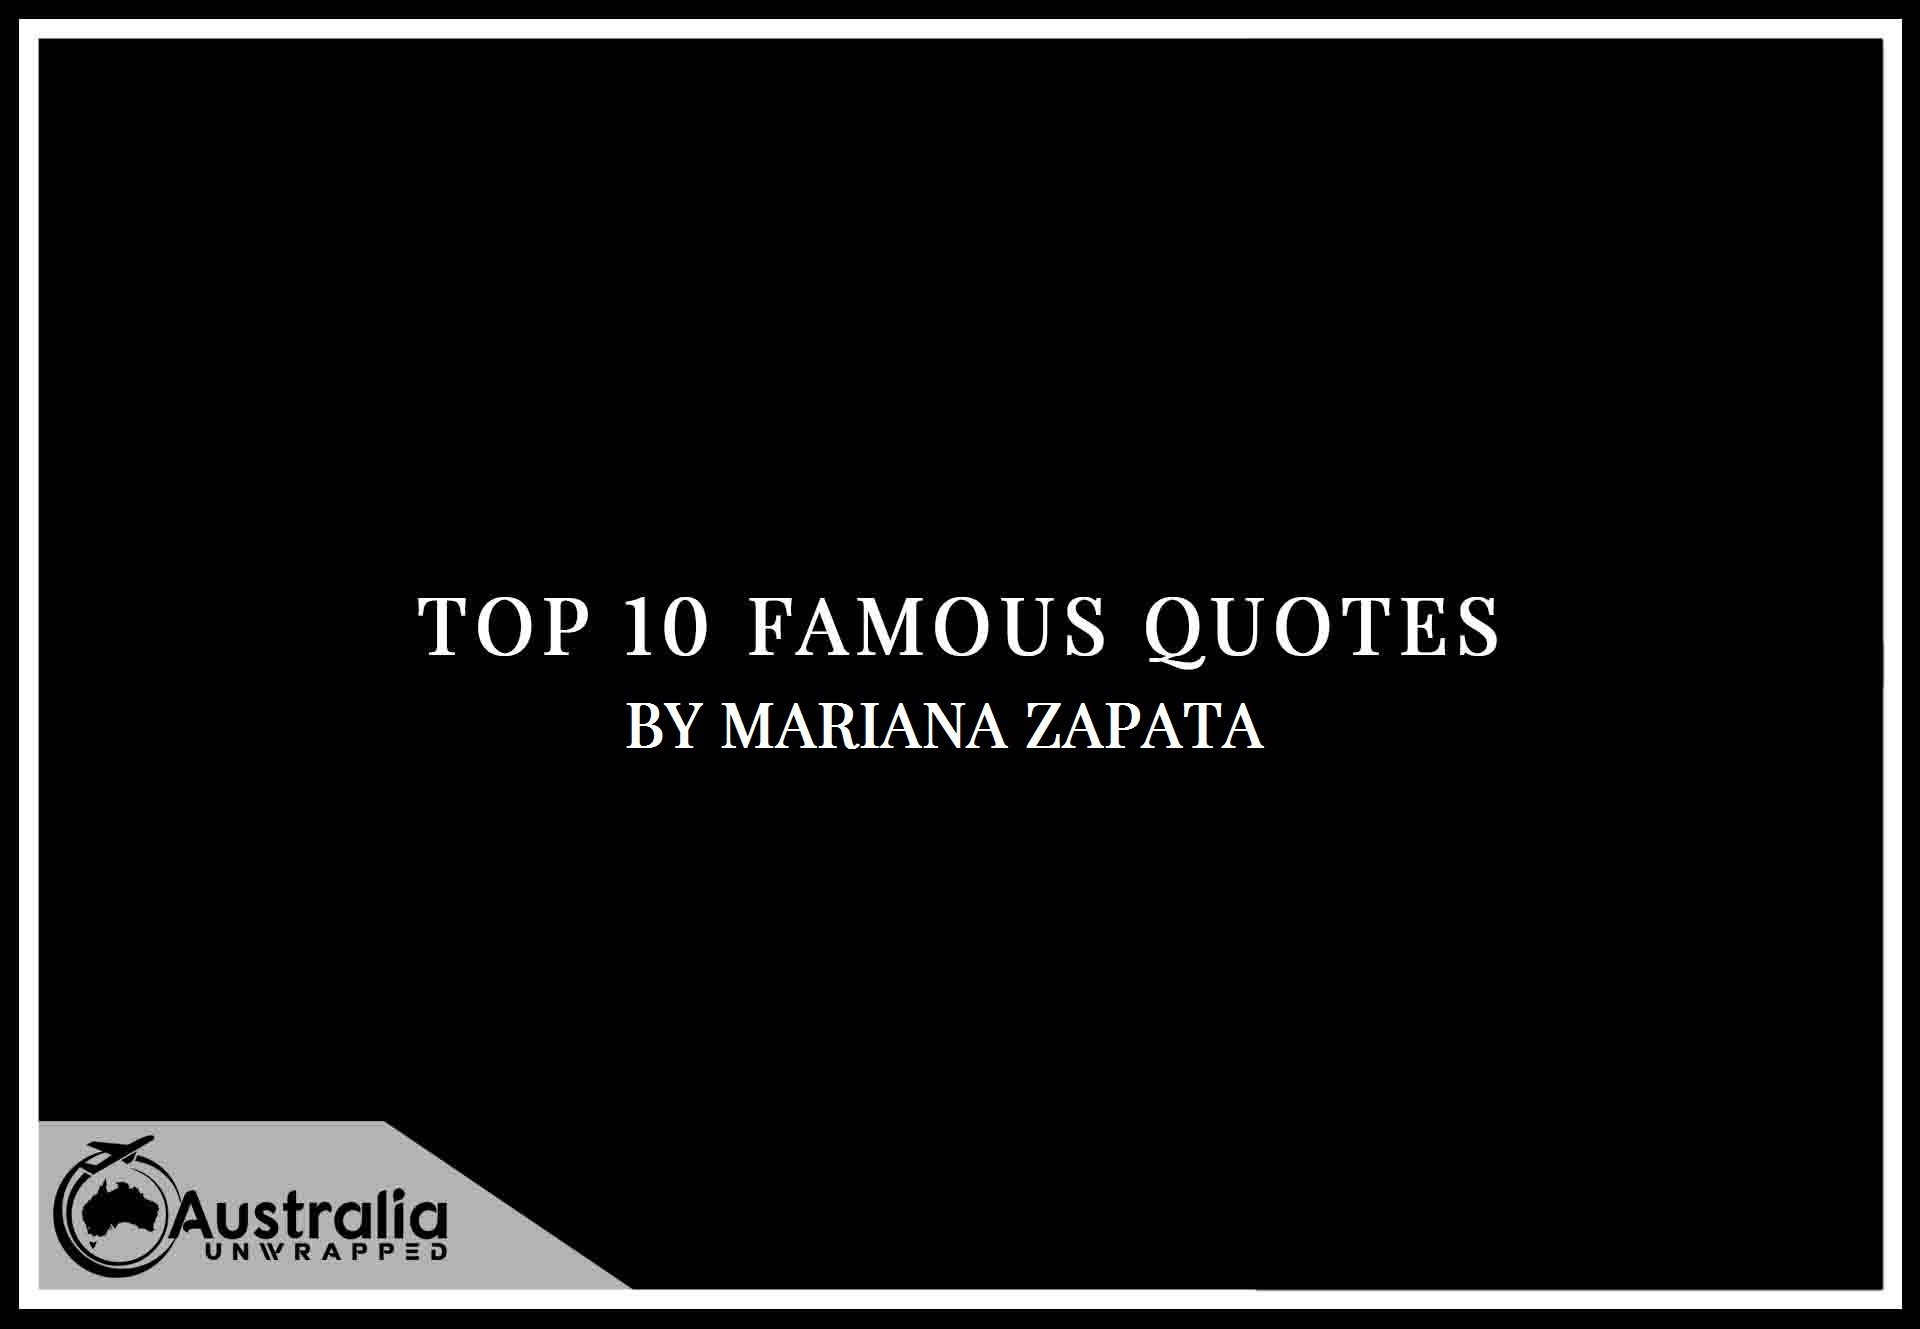 Mariana Zapata's Top 10 Popular and Famous Quotes